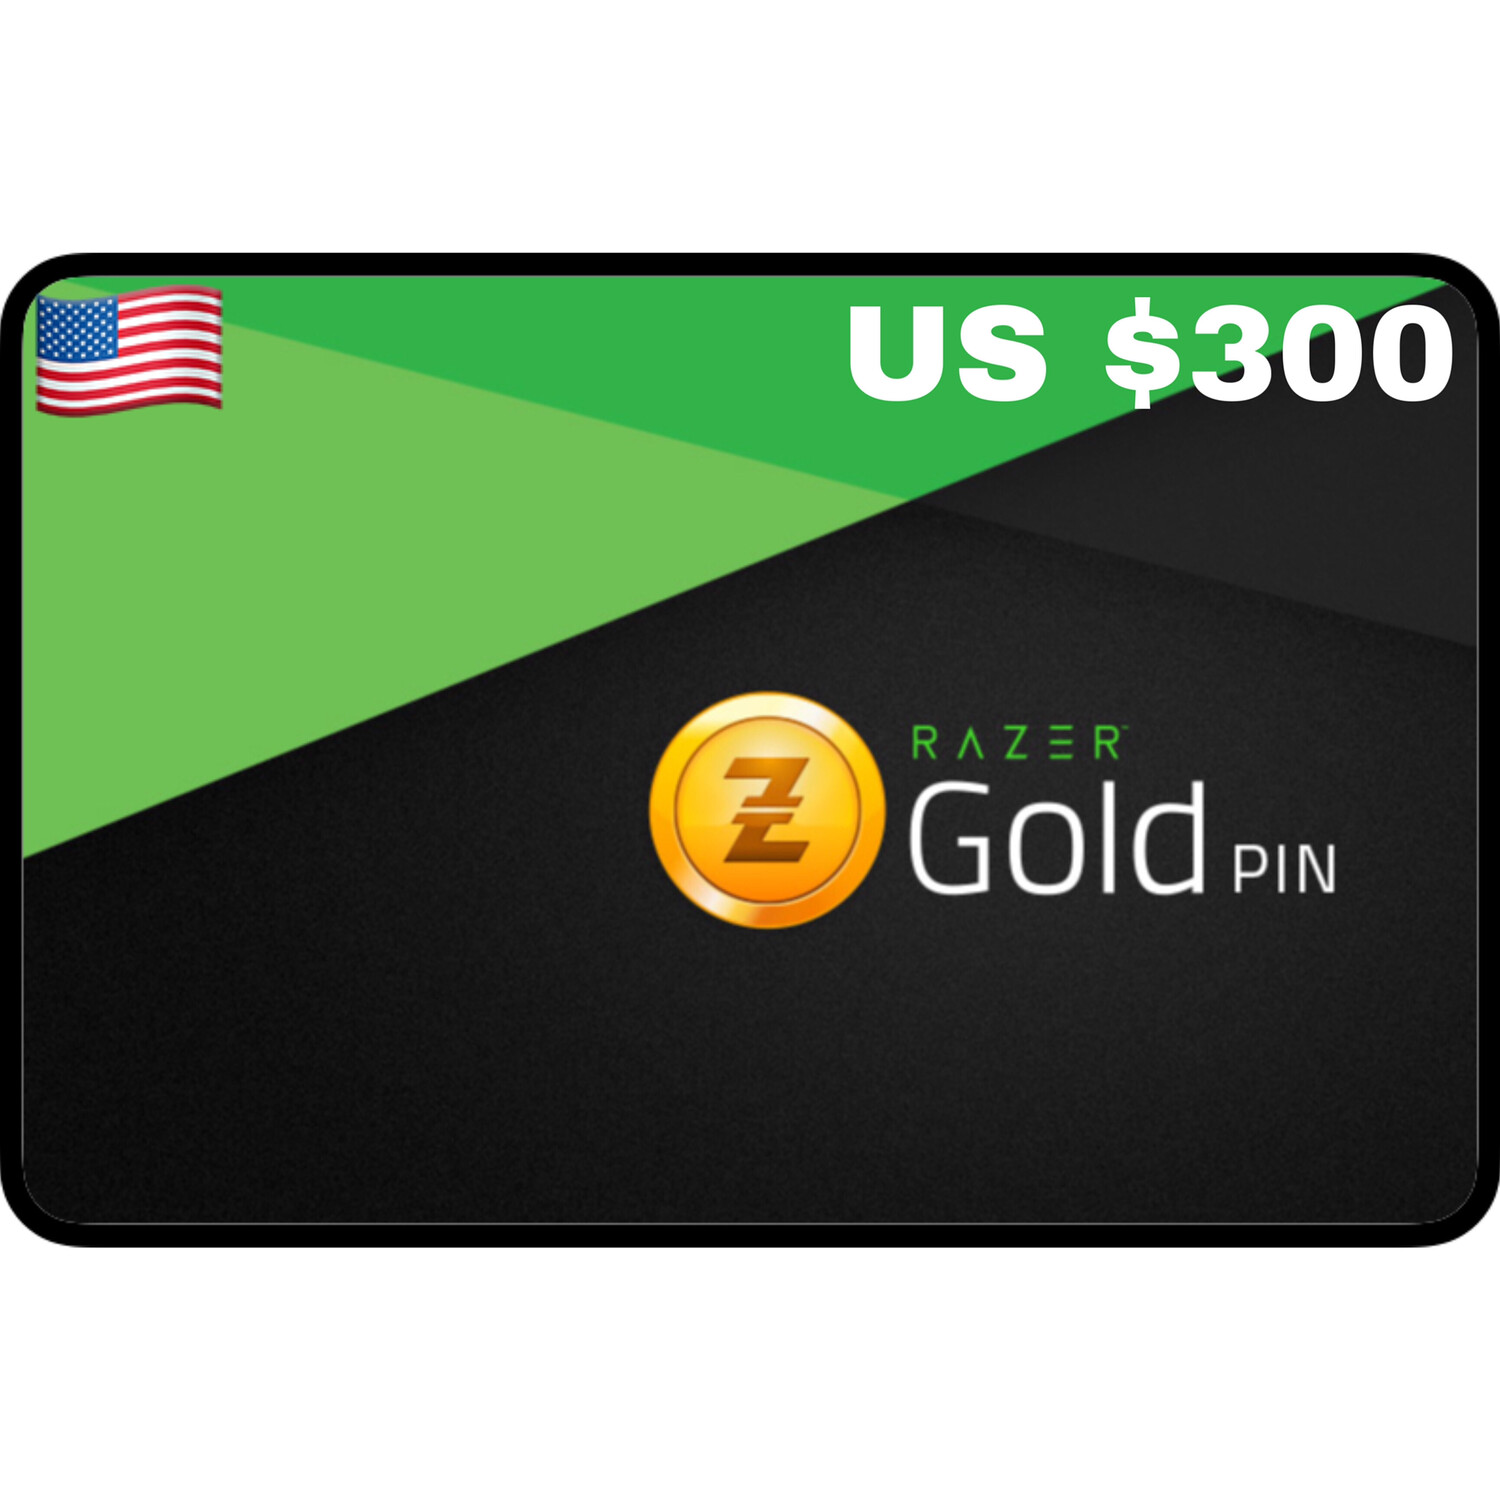 Razer Gold Pin US $300